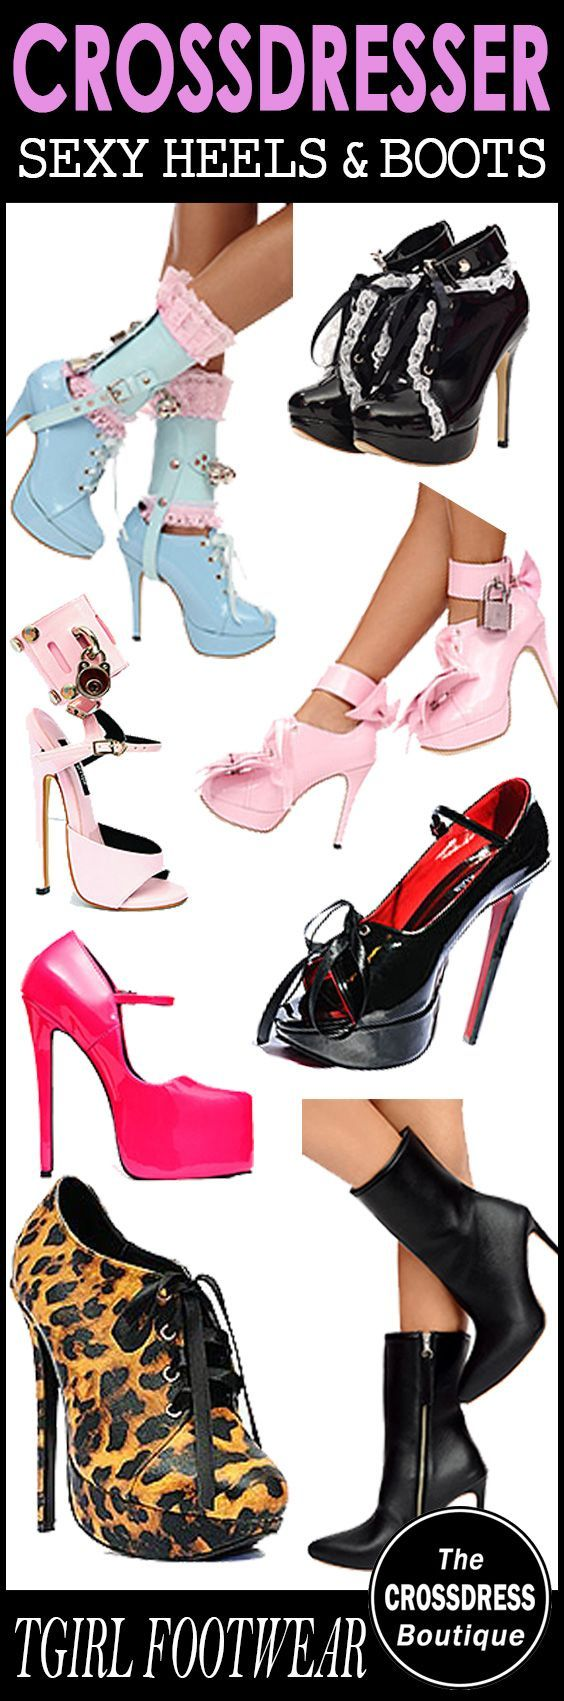 Sexy Crossdresser Footwear - Shoes, Heels and Boots. See the range here: http://www.crossdressboutique.com/tgirl/shoes-boots-hosiery/